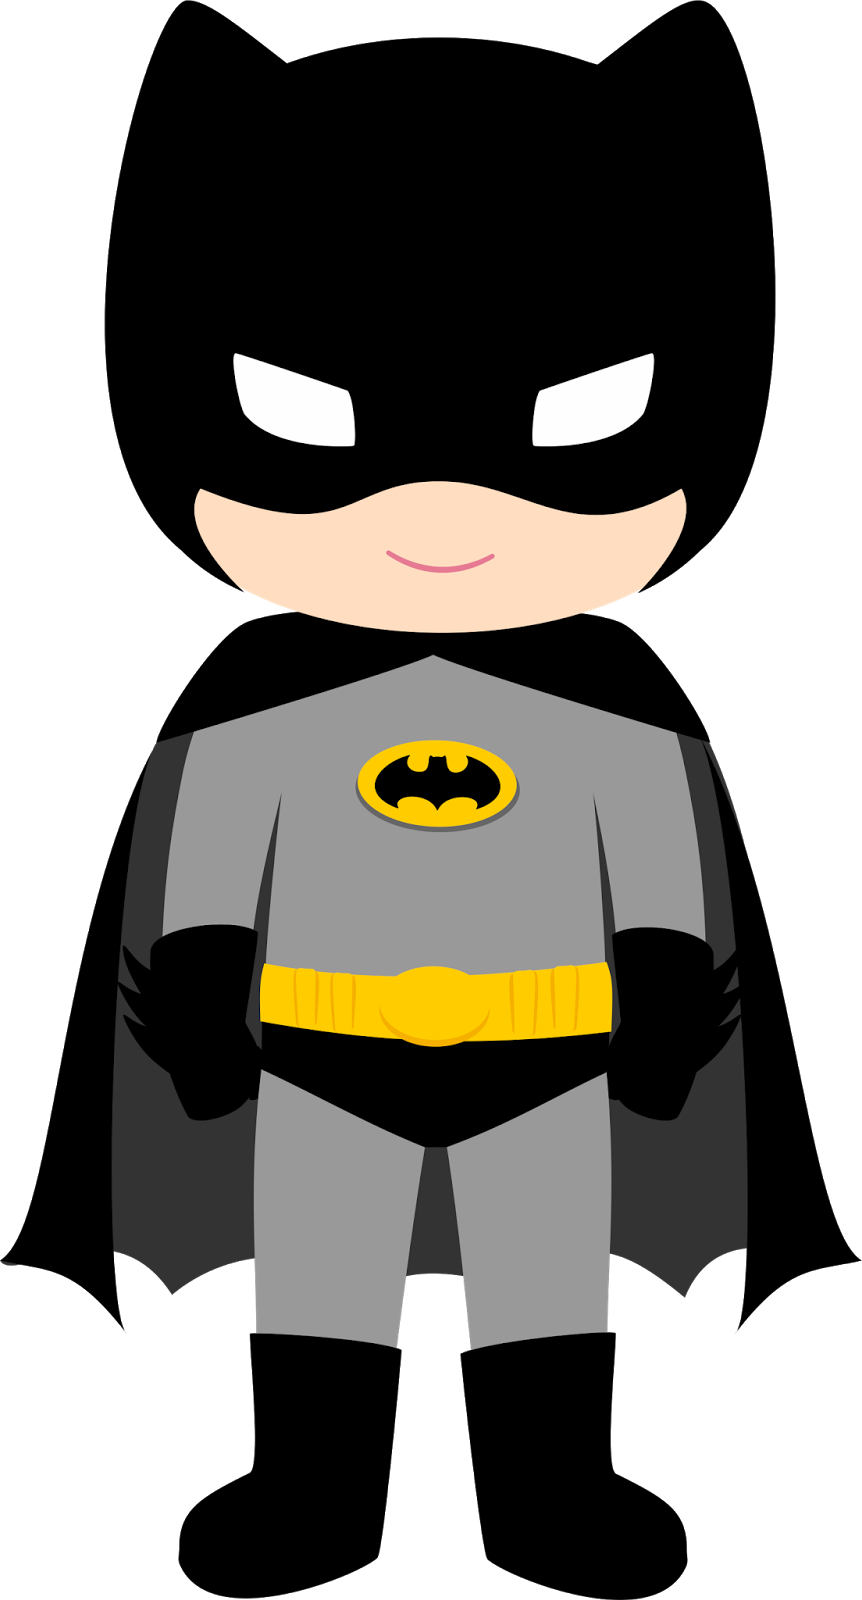 Characters of batman kids version clip art oh my fiesta - Batman cartoon images ...